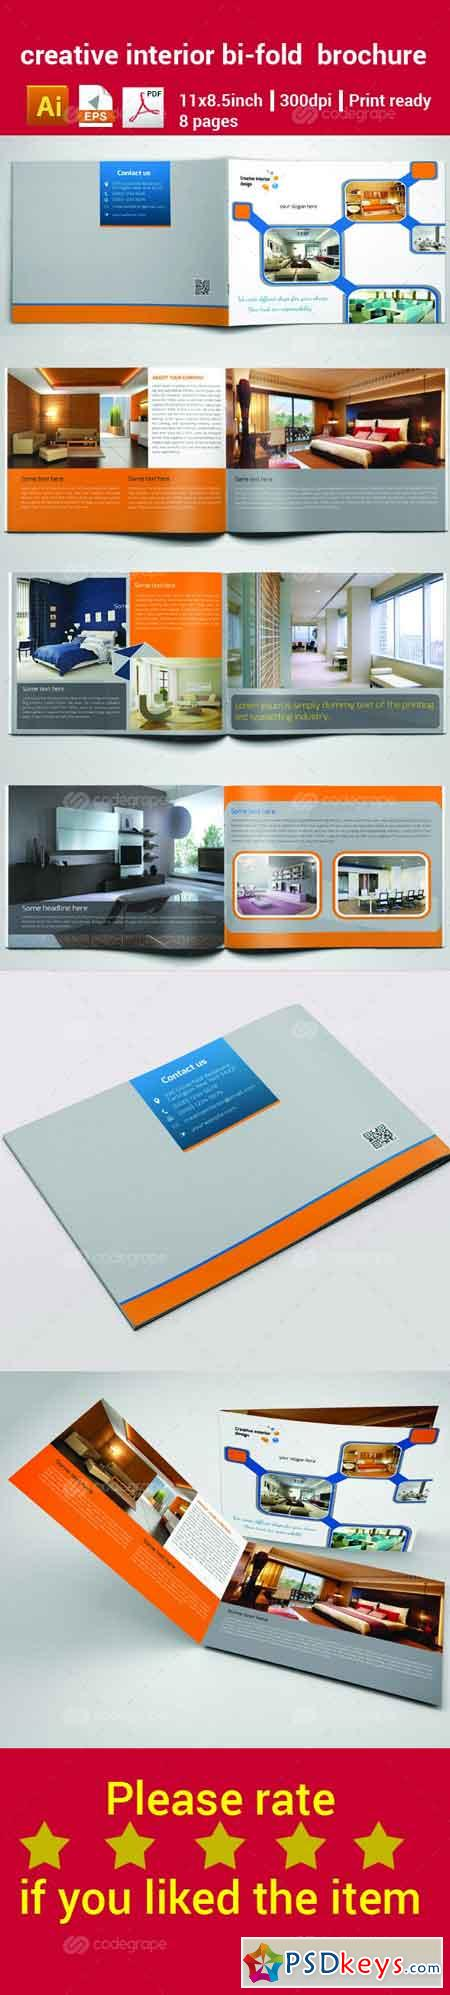 Creative interior bi fold brochure 6313 free download for Bi fold brochure template illustrator